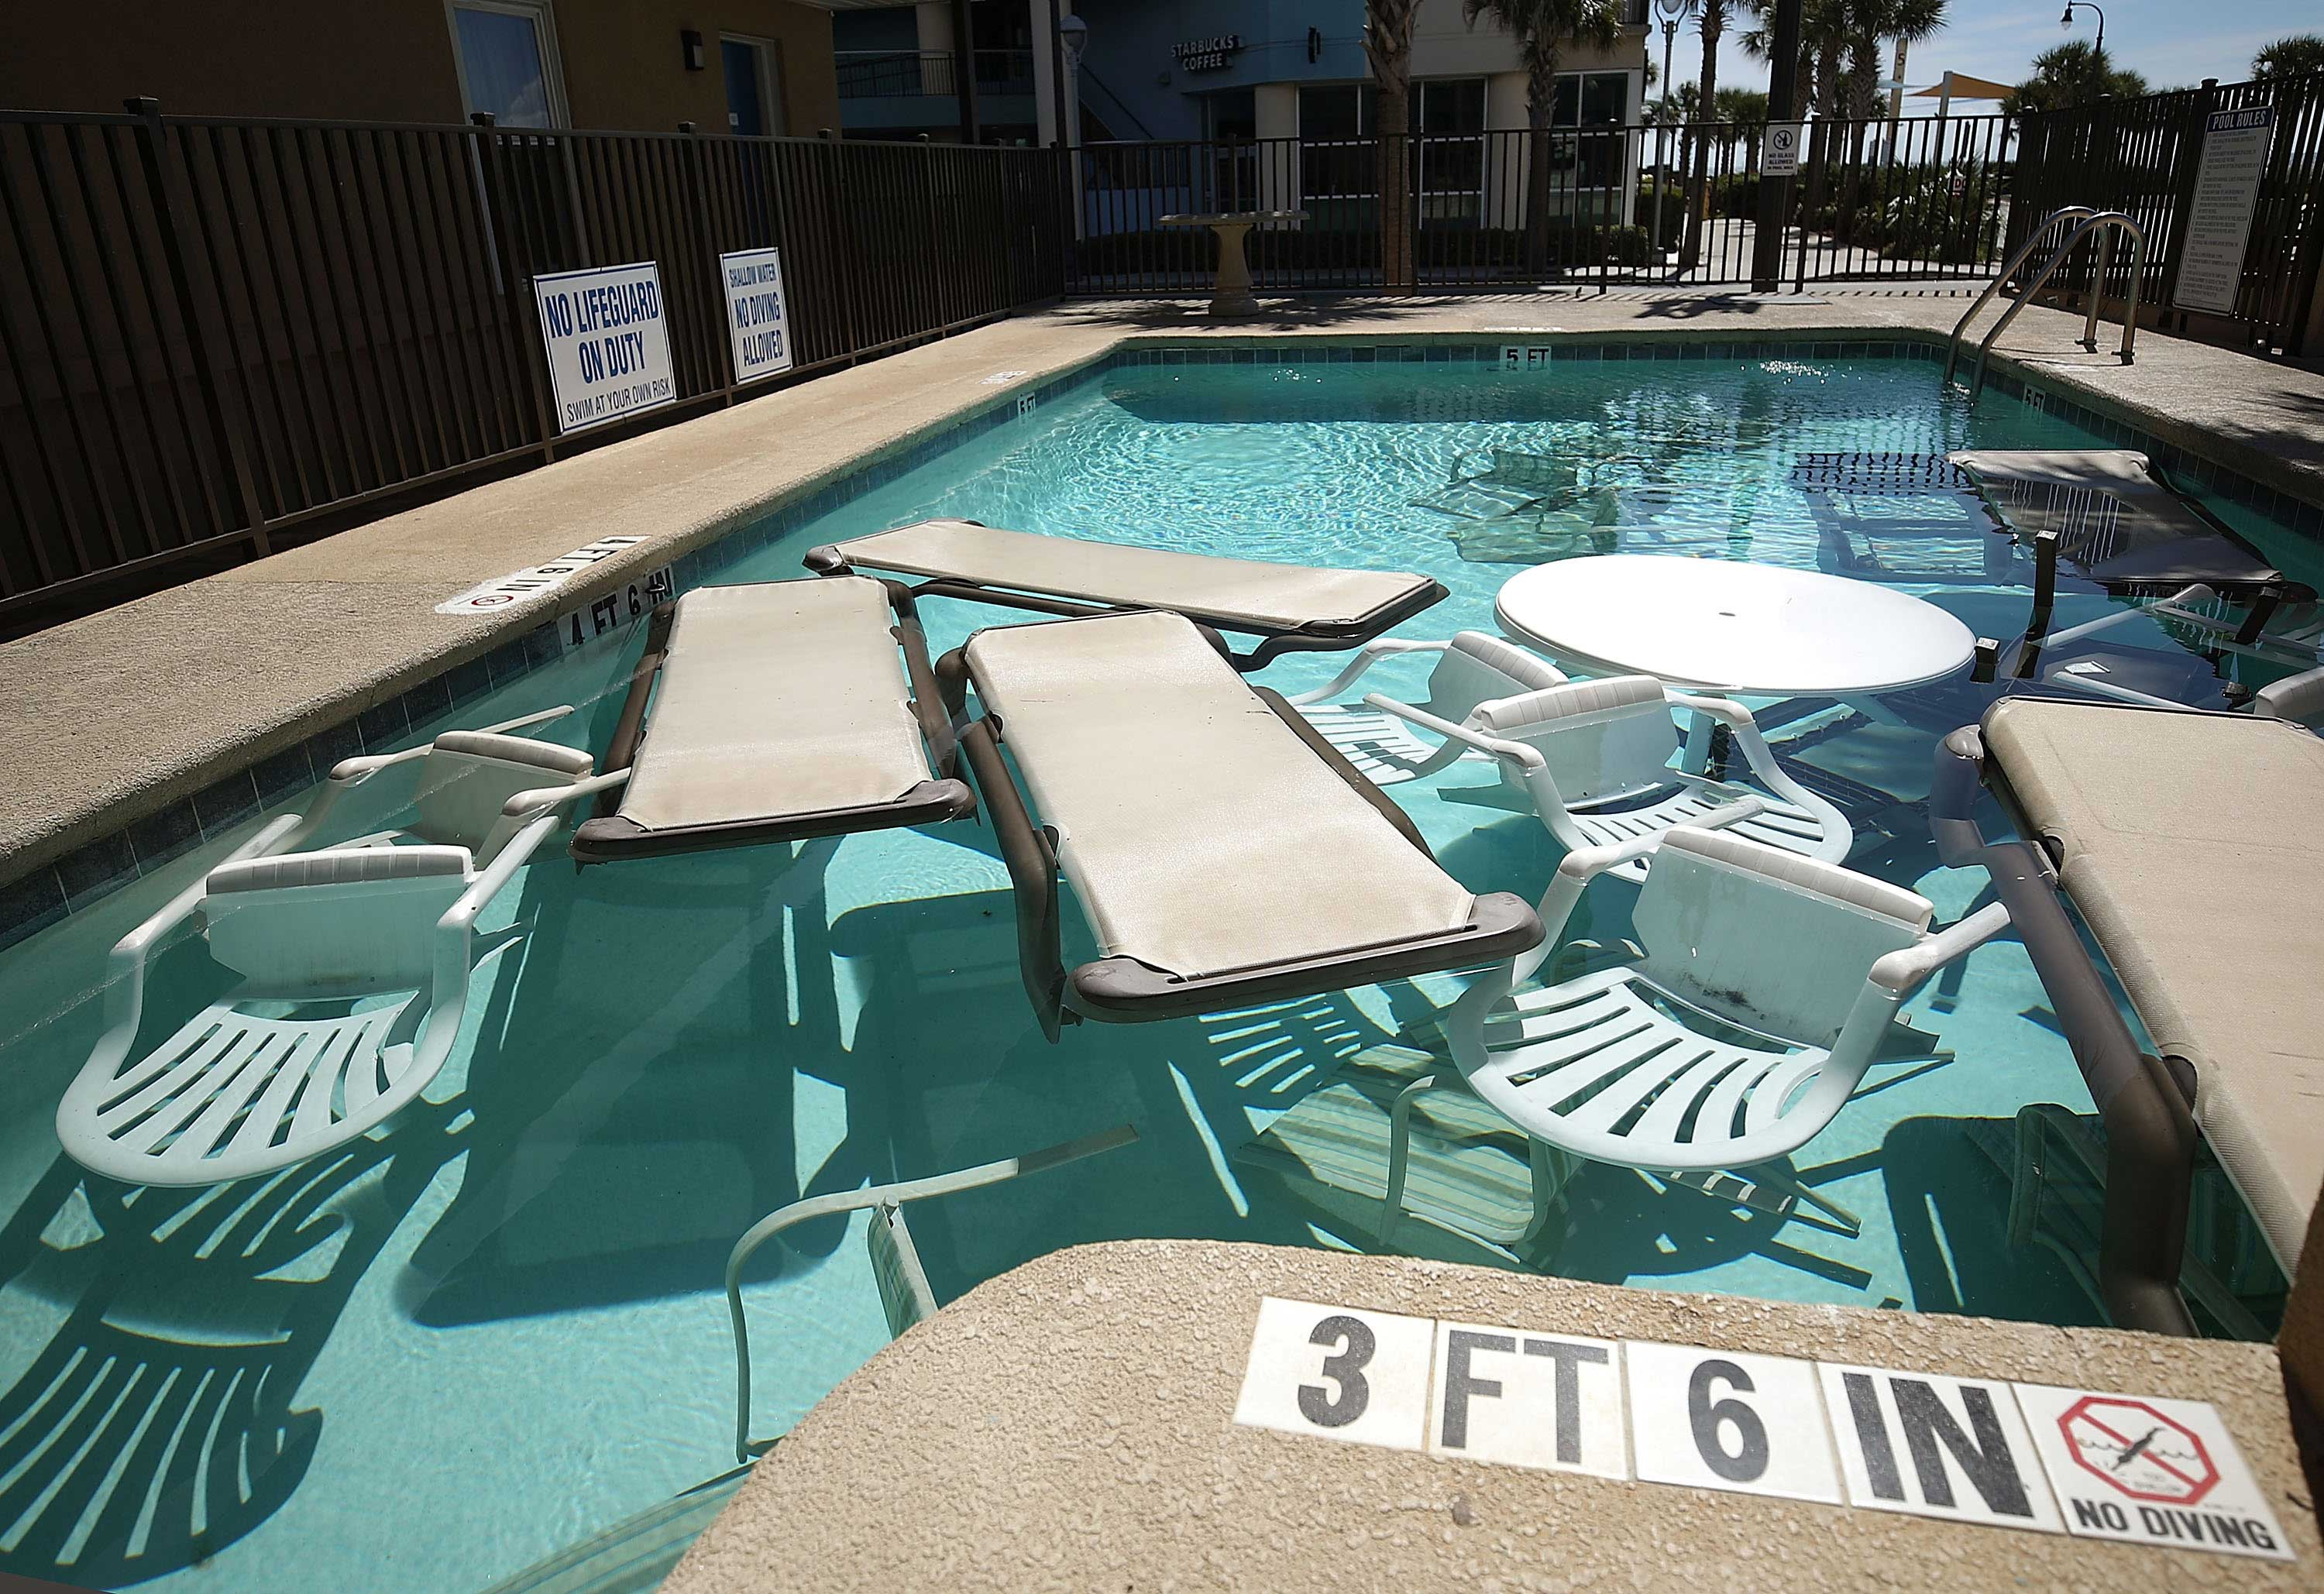 "<div class=""meta image-caption""><div class=""origin-logo origin-image none""><span>none</span></div><span class=""caption-text"">Poolside furniture is placed in the pool of a hotel ahead of the approaching Hurricane Florence on September 12, 2018. (Mark Wilson/Getty Images)</span></div>"